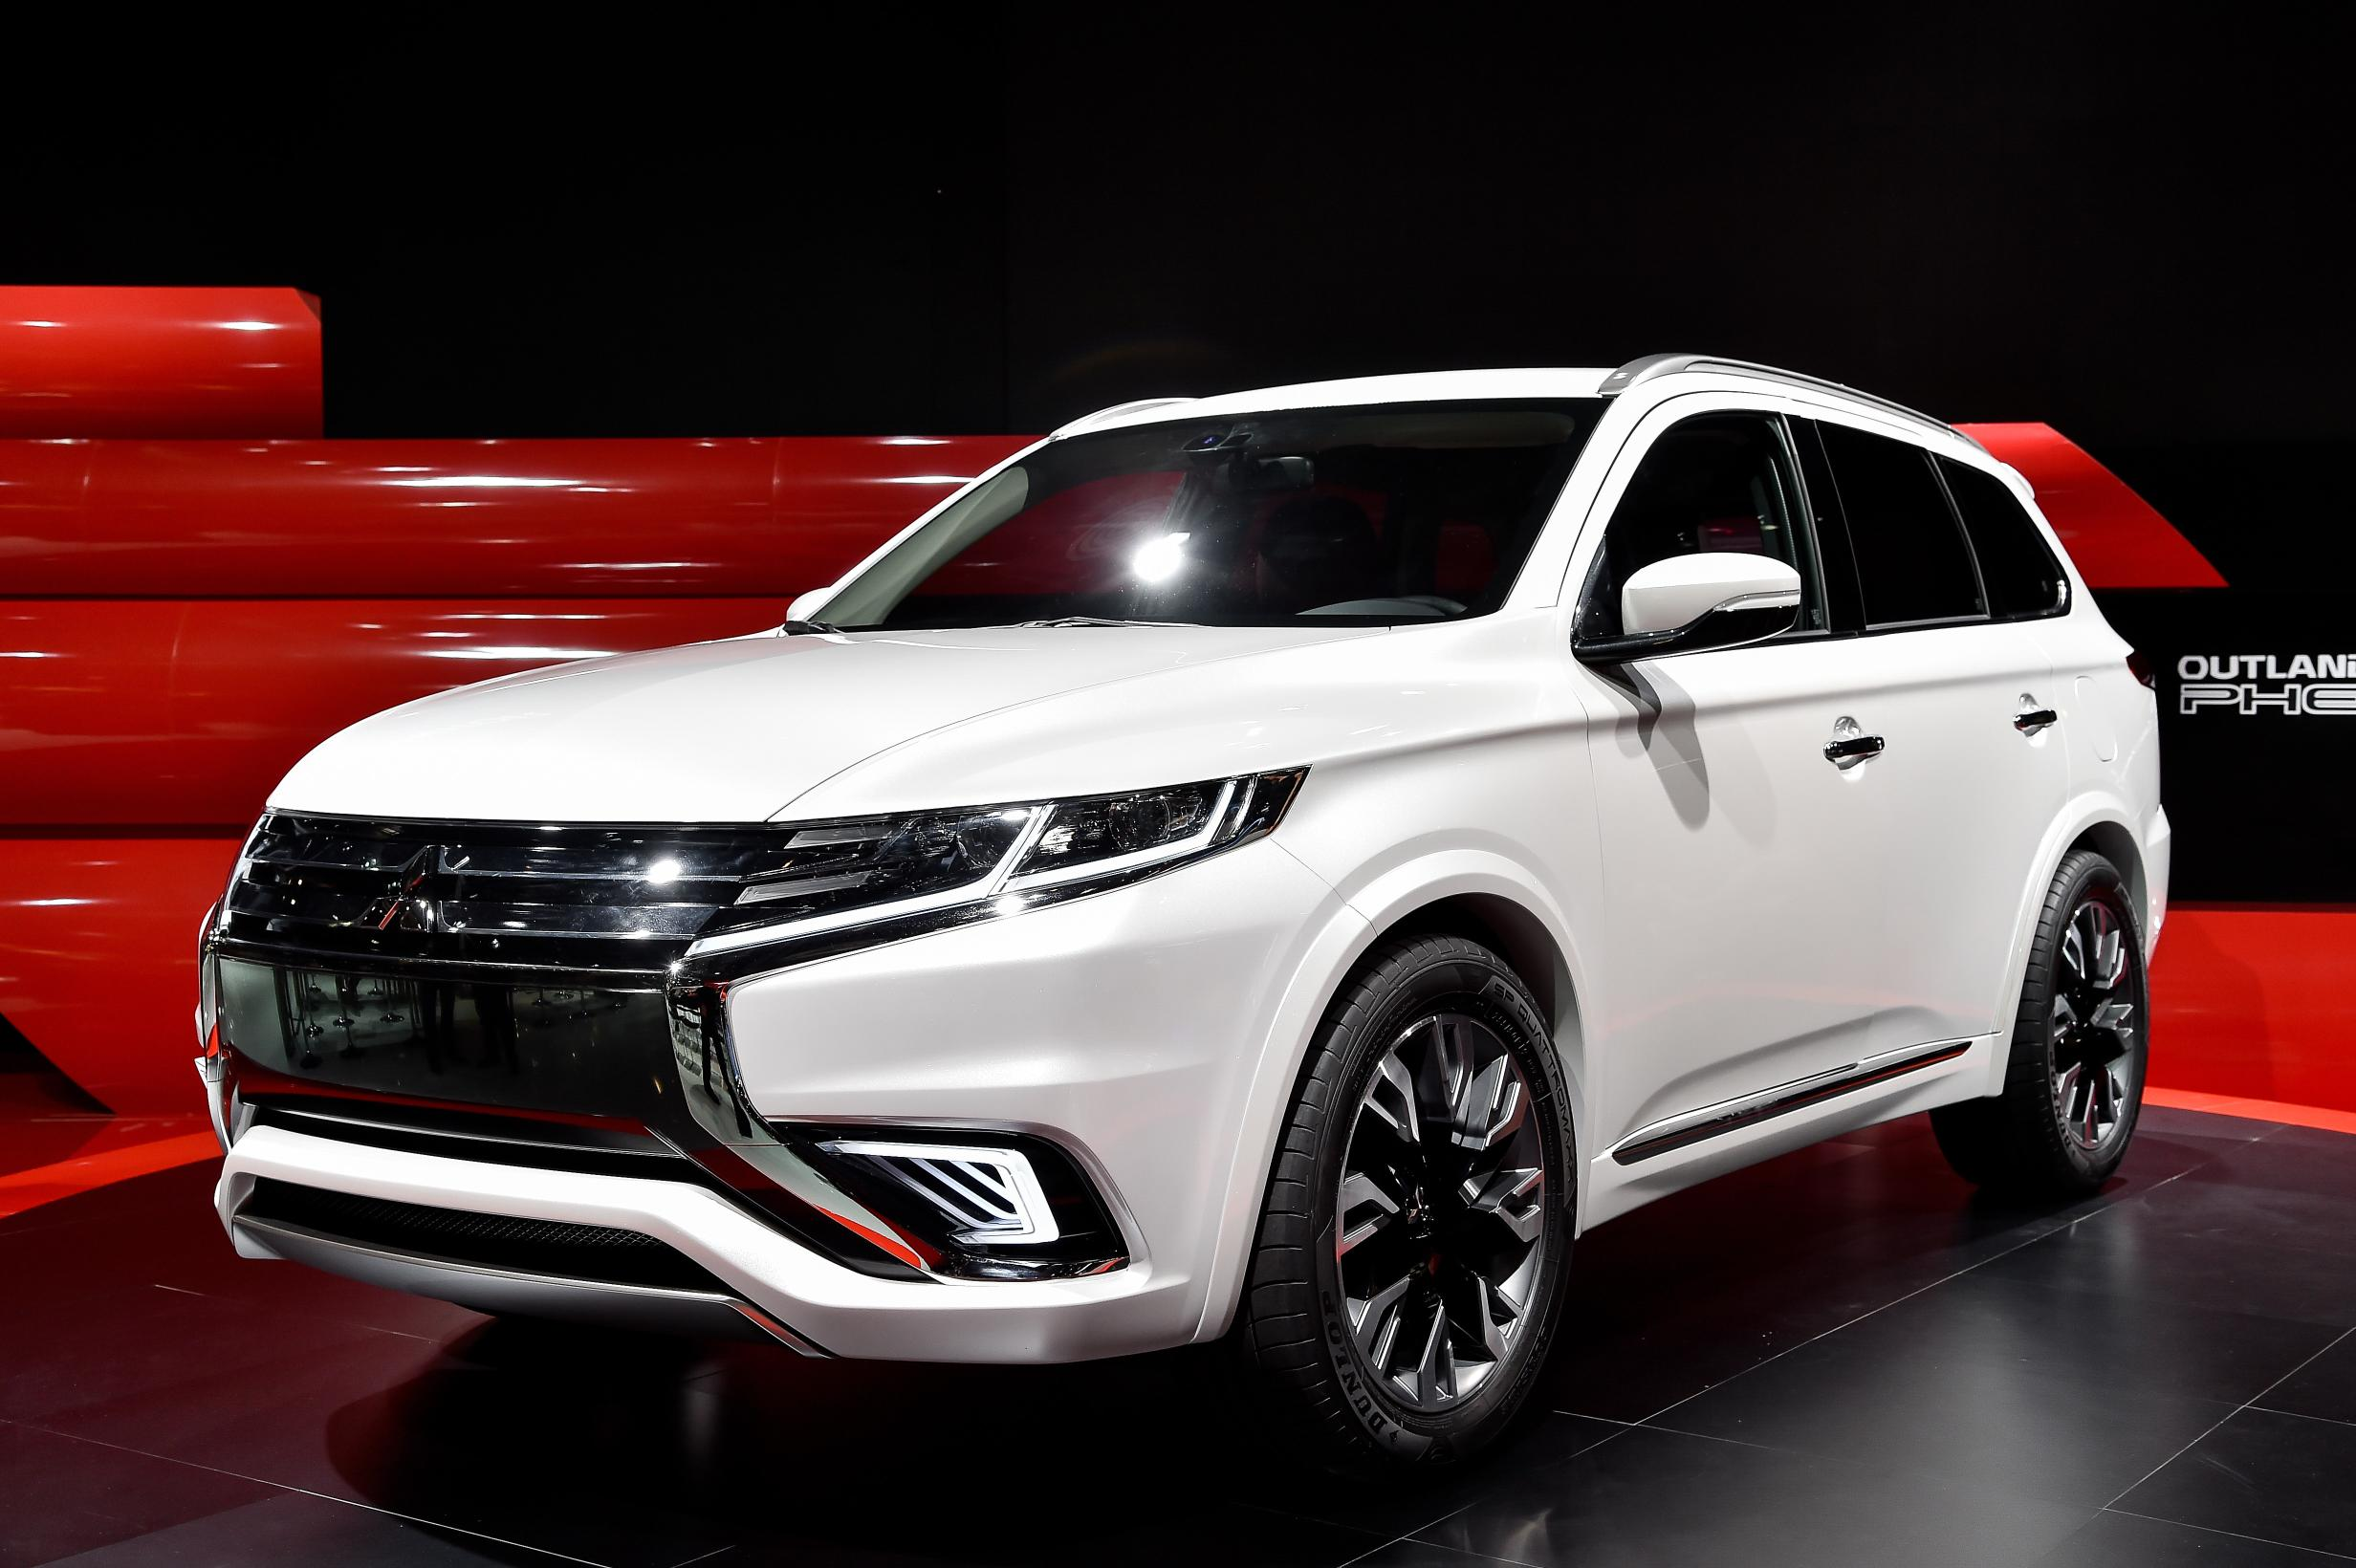 Mitsubishi Outlander Phev Concept S Makes First Appearance At Paris